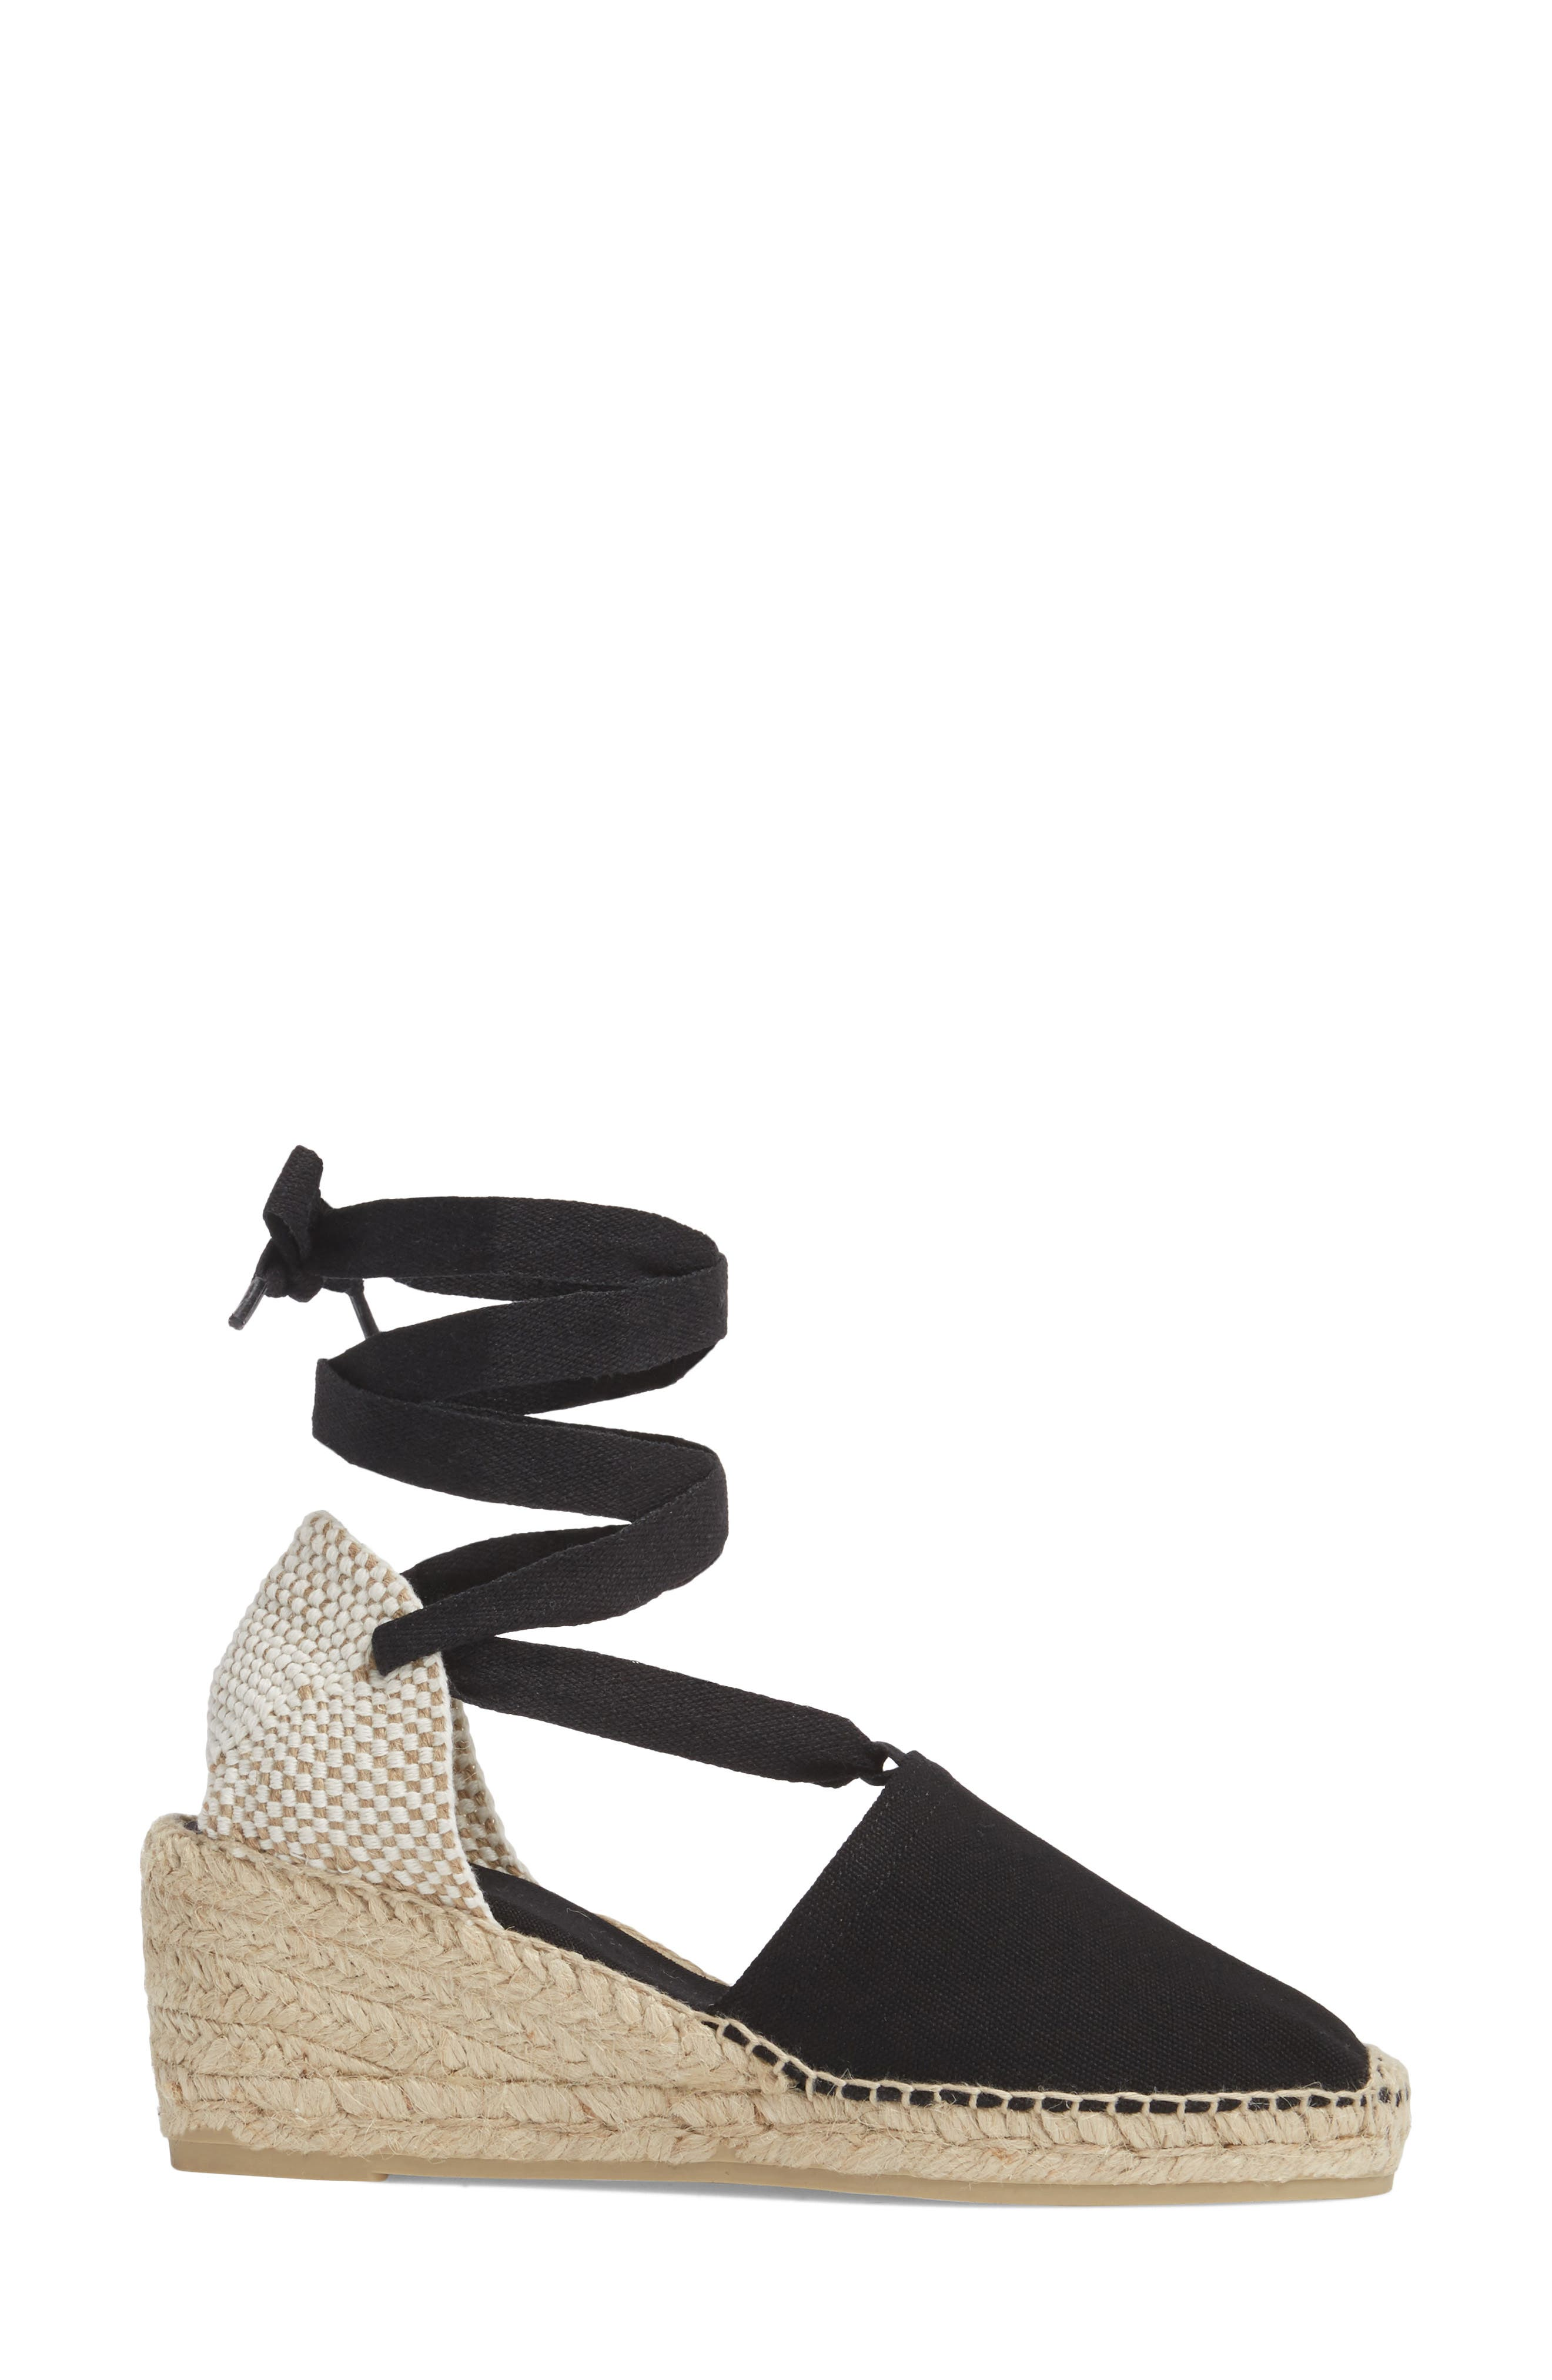 TONI PONS, Valencia Wraparound Espadrille Wedge, Alternate thumbnail 3, color, BLACK FABRIC